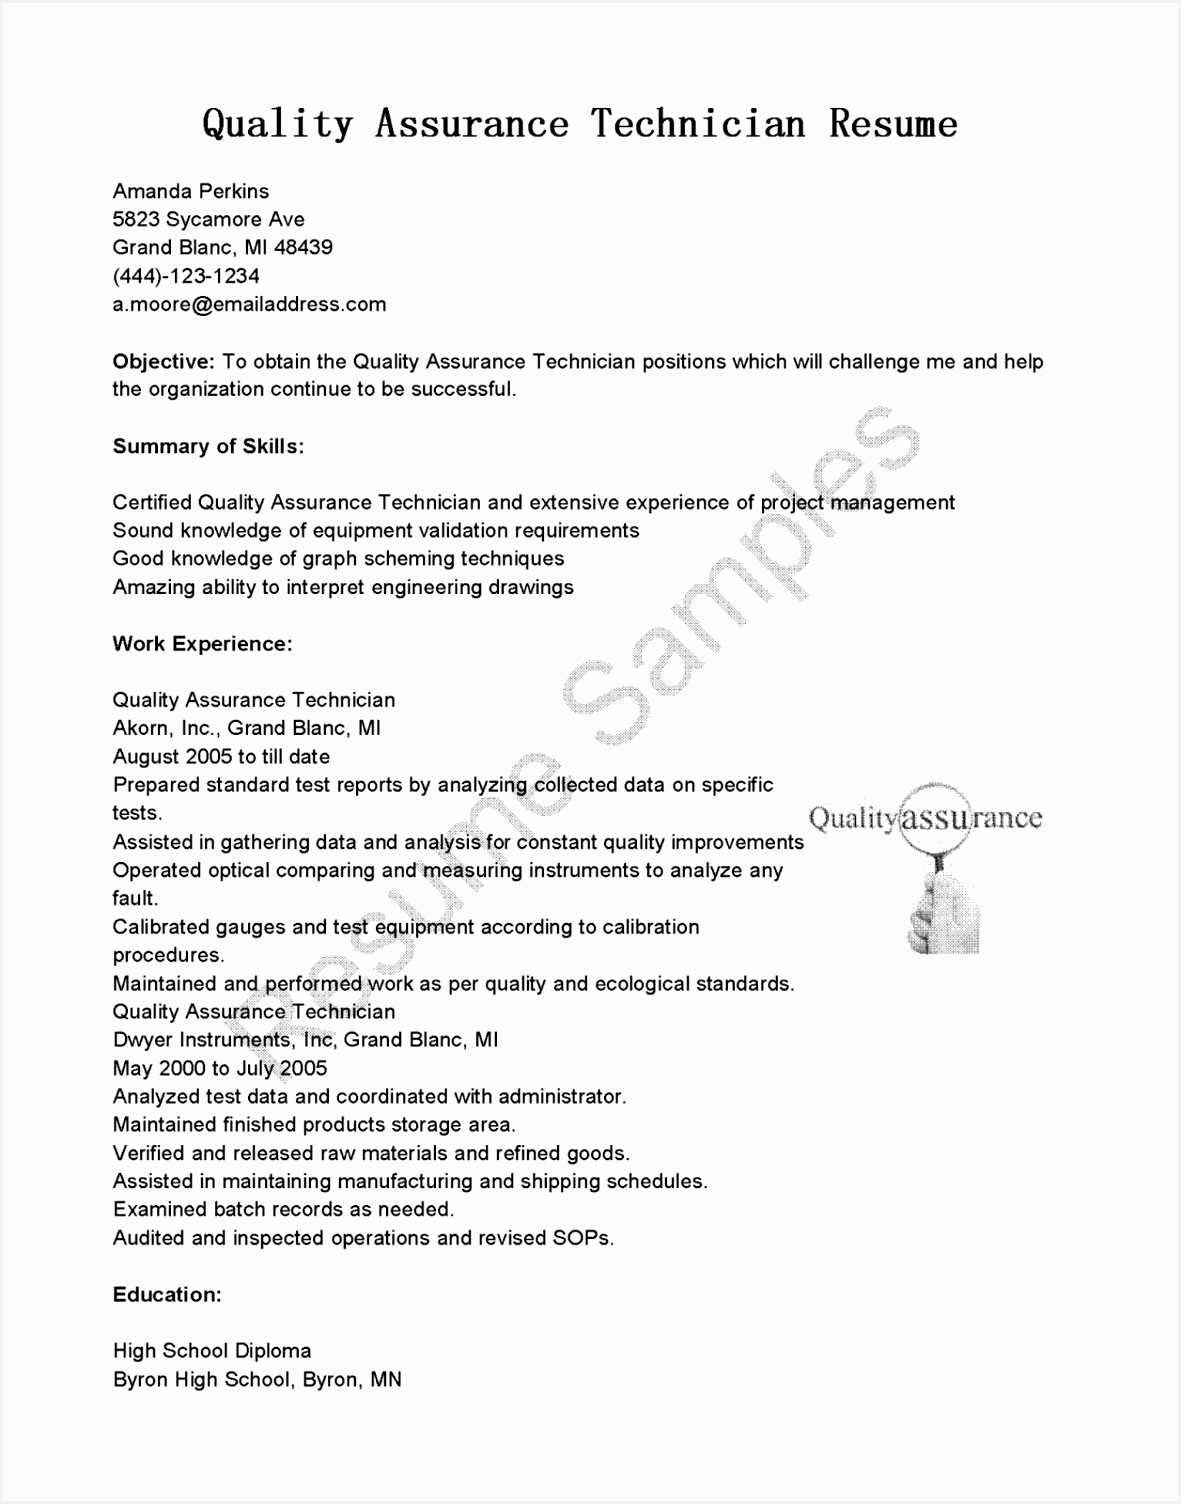 Quality Control Inspector Resume Sample Kuaaq Lovely Precision Inspector Resume New Quality Inspector Resume Superb Qa Of Quality Control Inspector Resume Sample Fghjg Inspirational Recruiter Resume Sample — Resumes Project